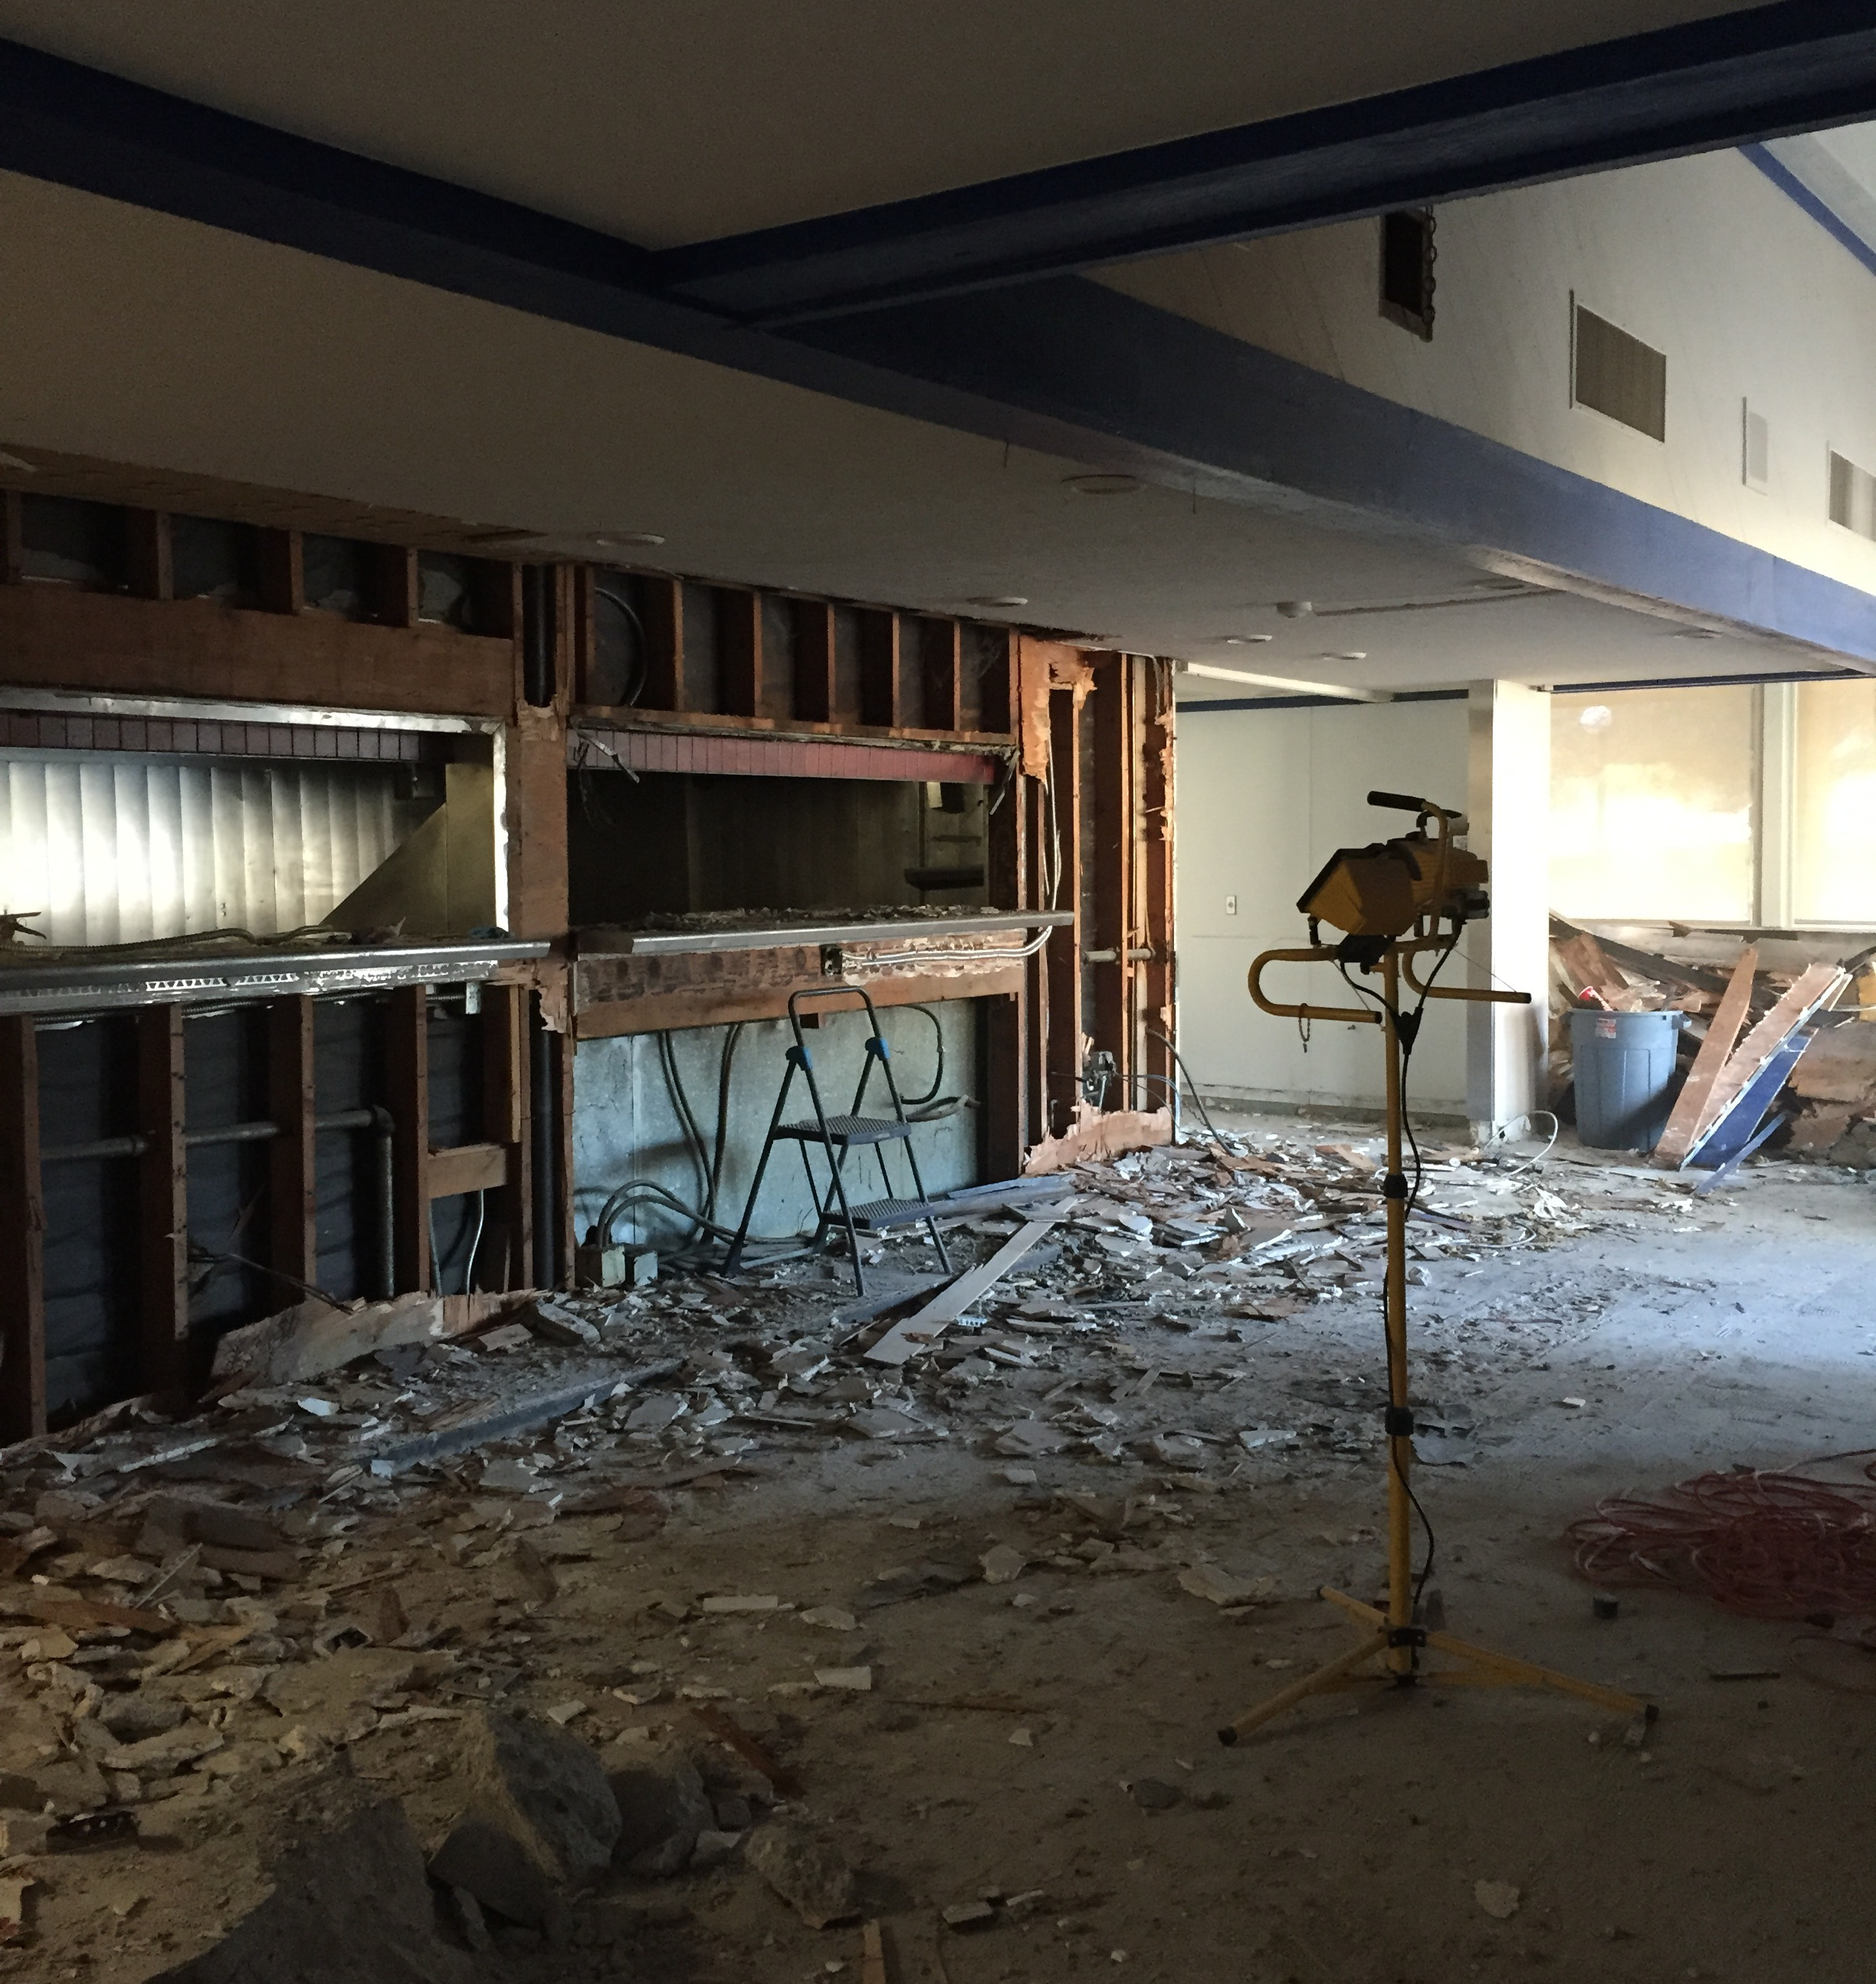 Demolition underway at the new Beacon Coffee location.